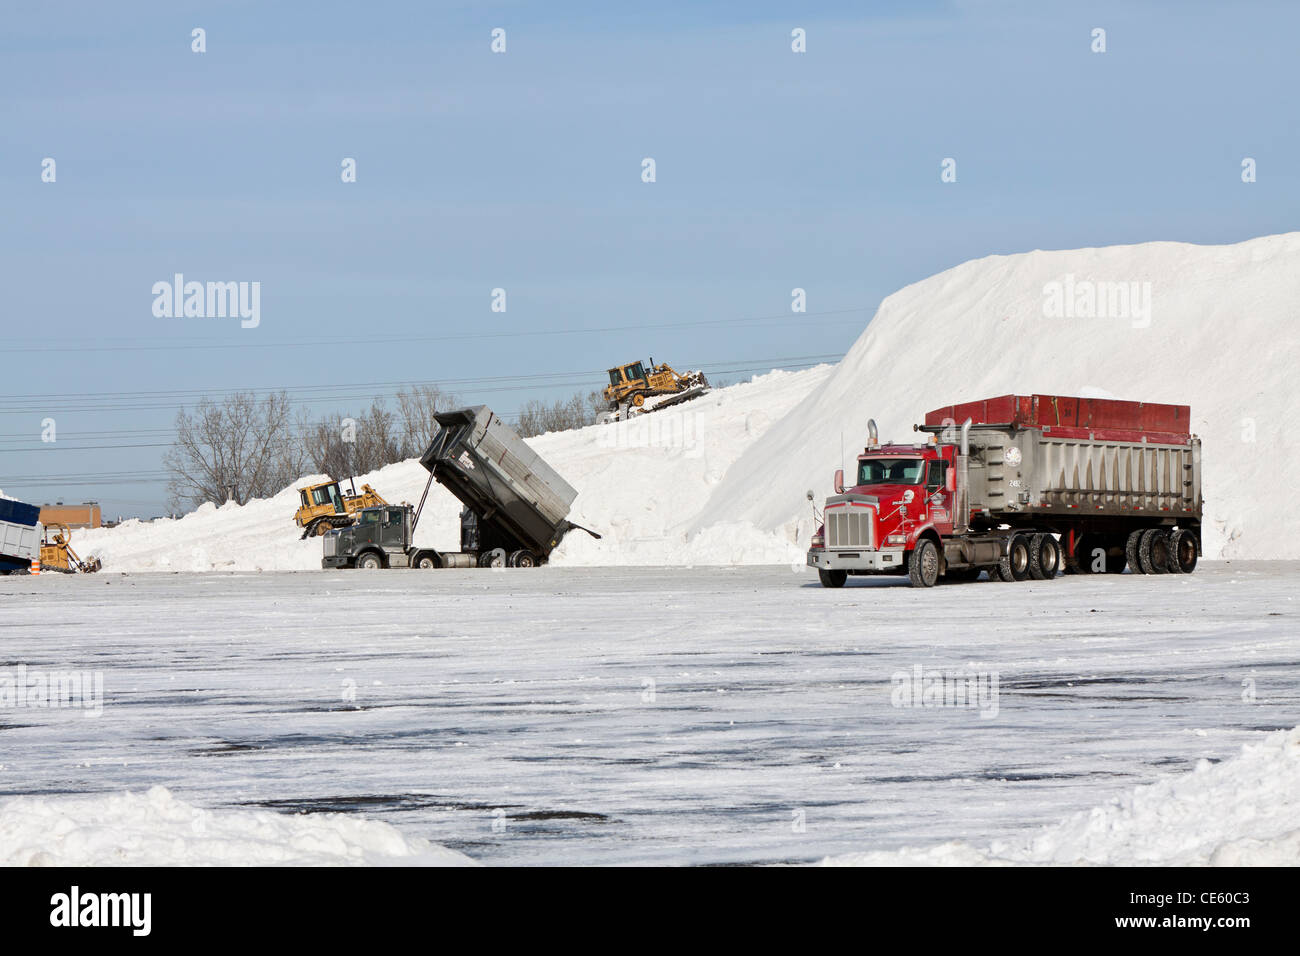 Truck Canada Snow Stock Photos & Truck Canada Snow Stock Images - Alamy